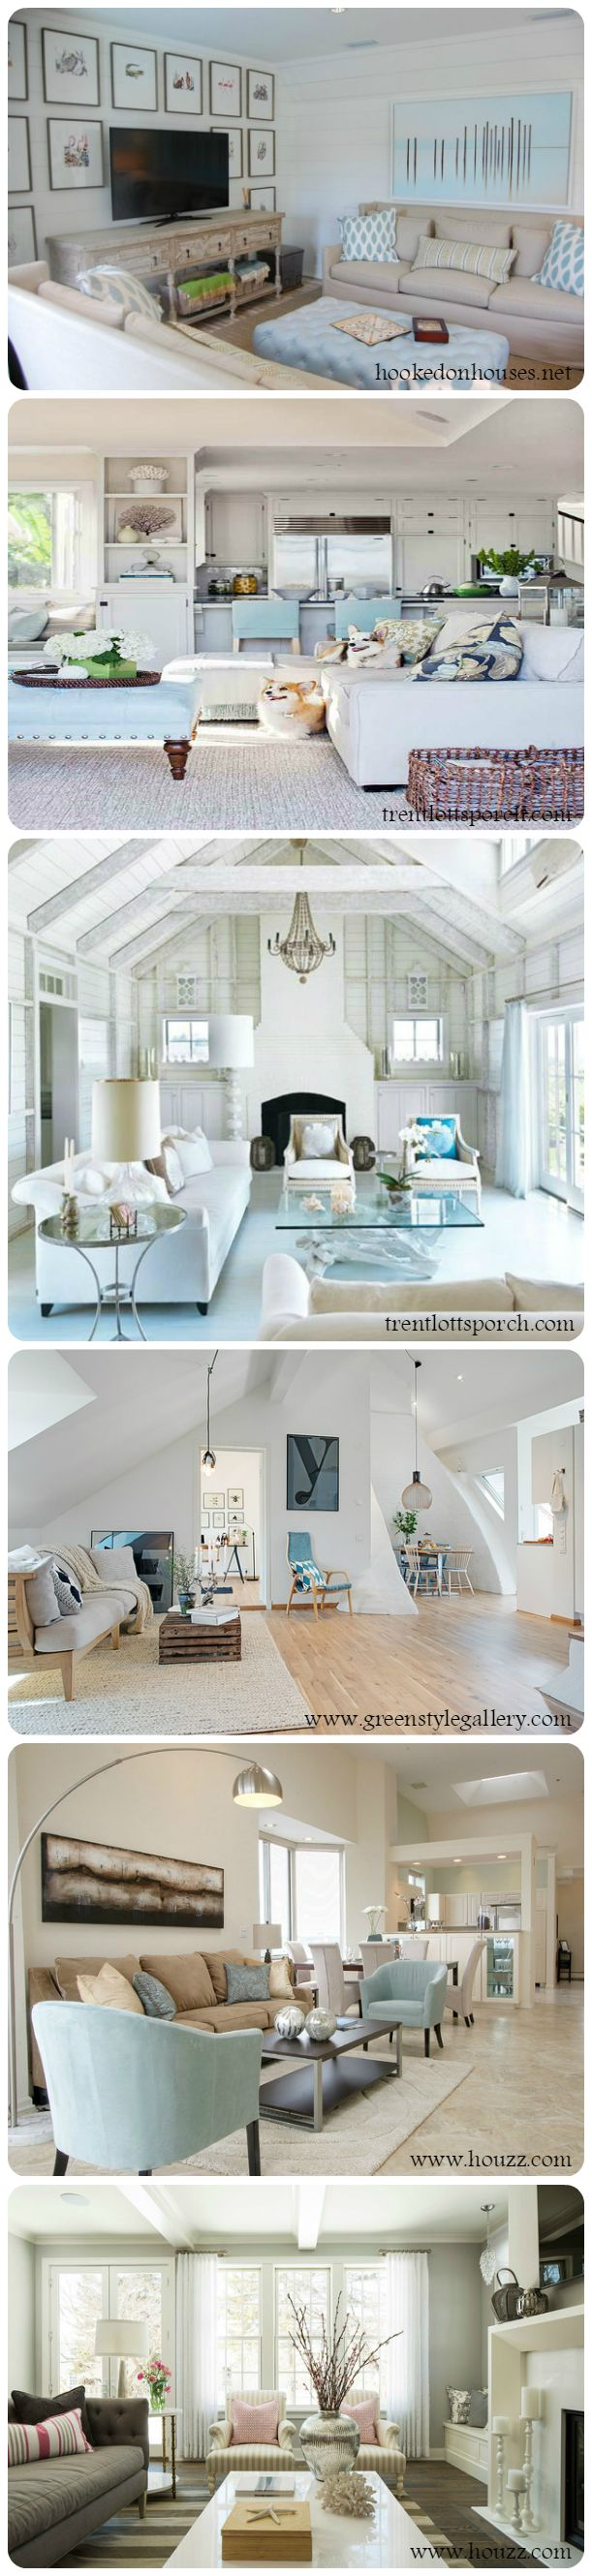 24 best Furniture French Country images on Pinterest | Decorating ...